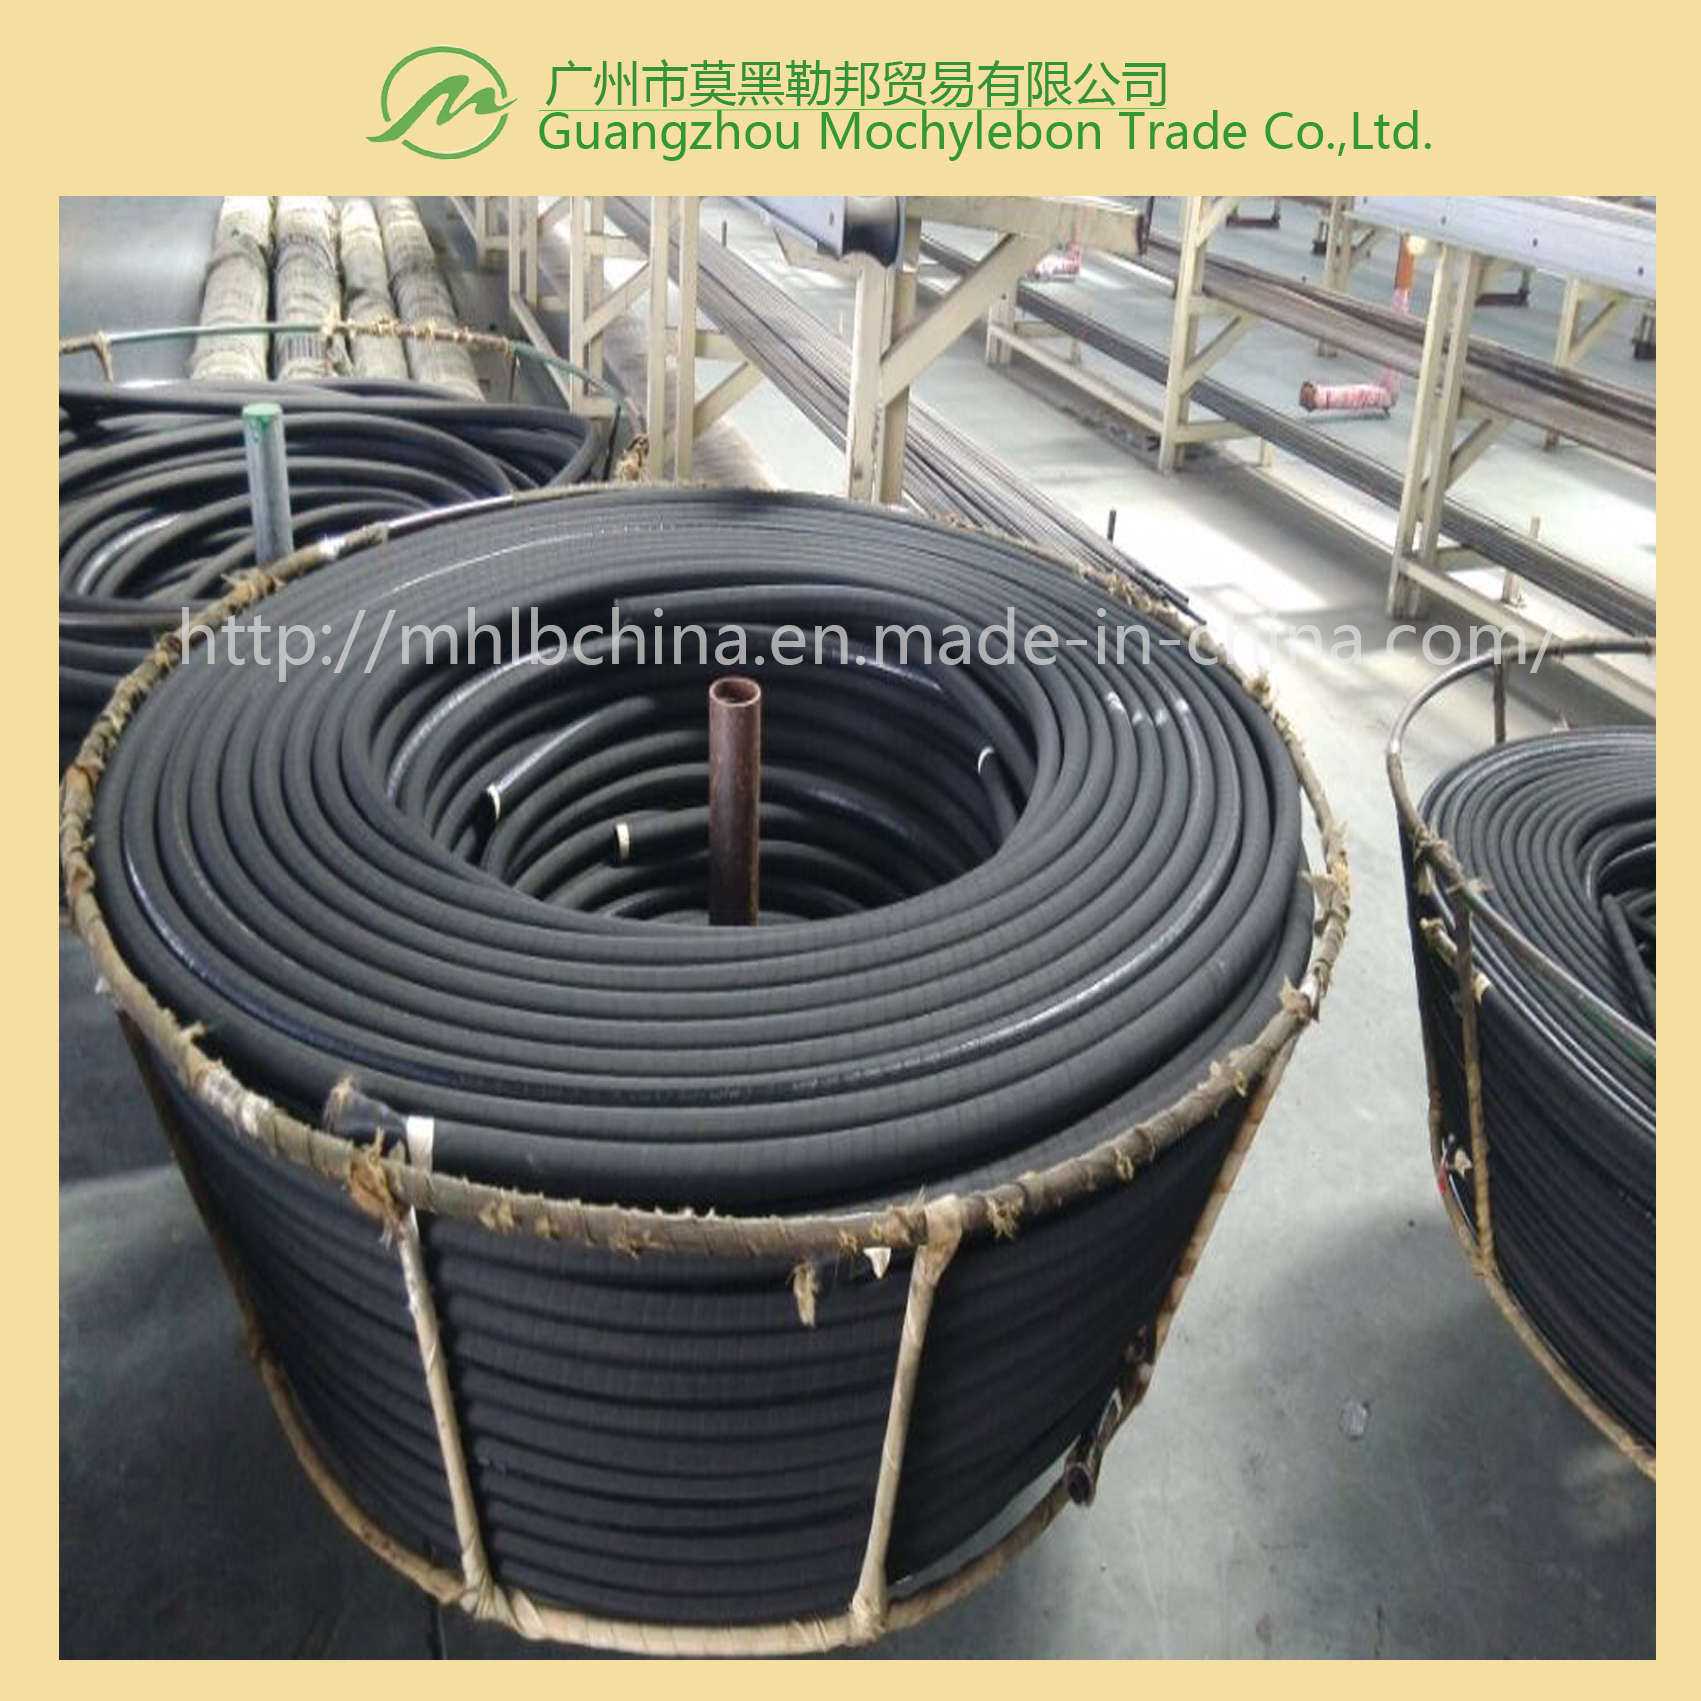 Wire Spiral Hydraulic Hose Fitting (EN856-4SP-1-1/4) pictures & photos